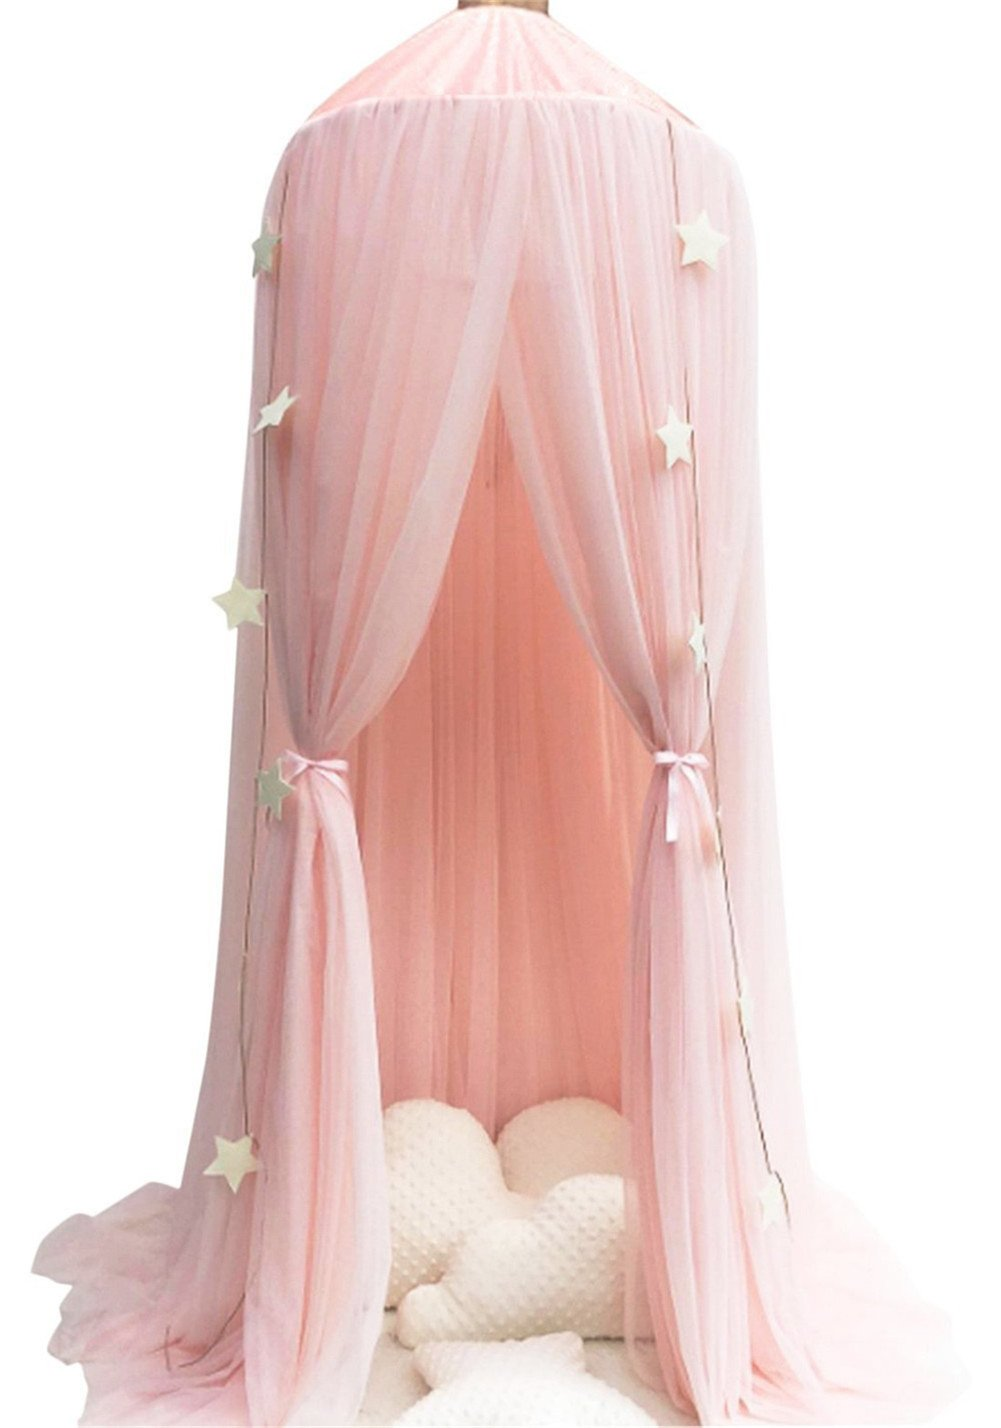 yangelo Dome Bed Canopy Kids Play Tent Mosquito Net for Baby Kids Indoor Playing 240cm (Pink)